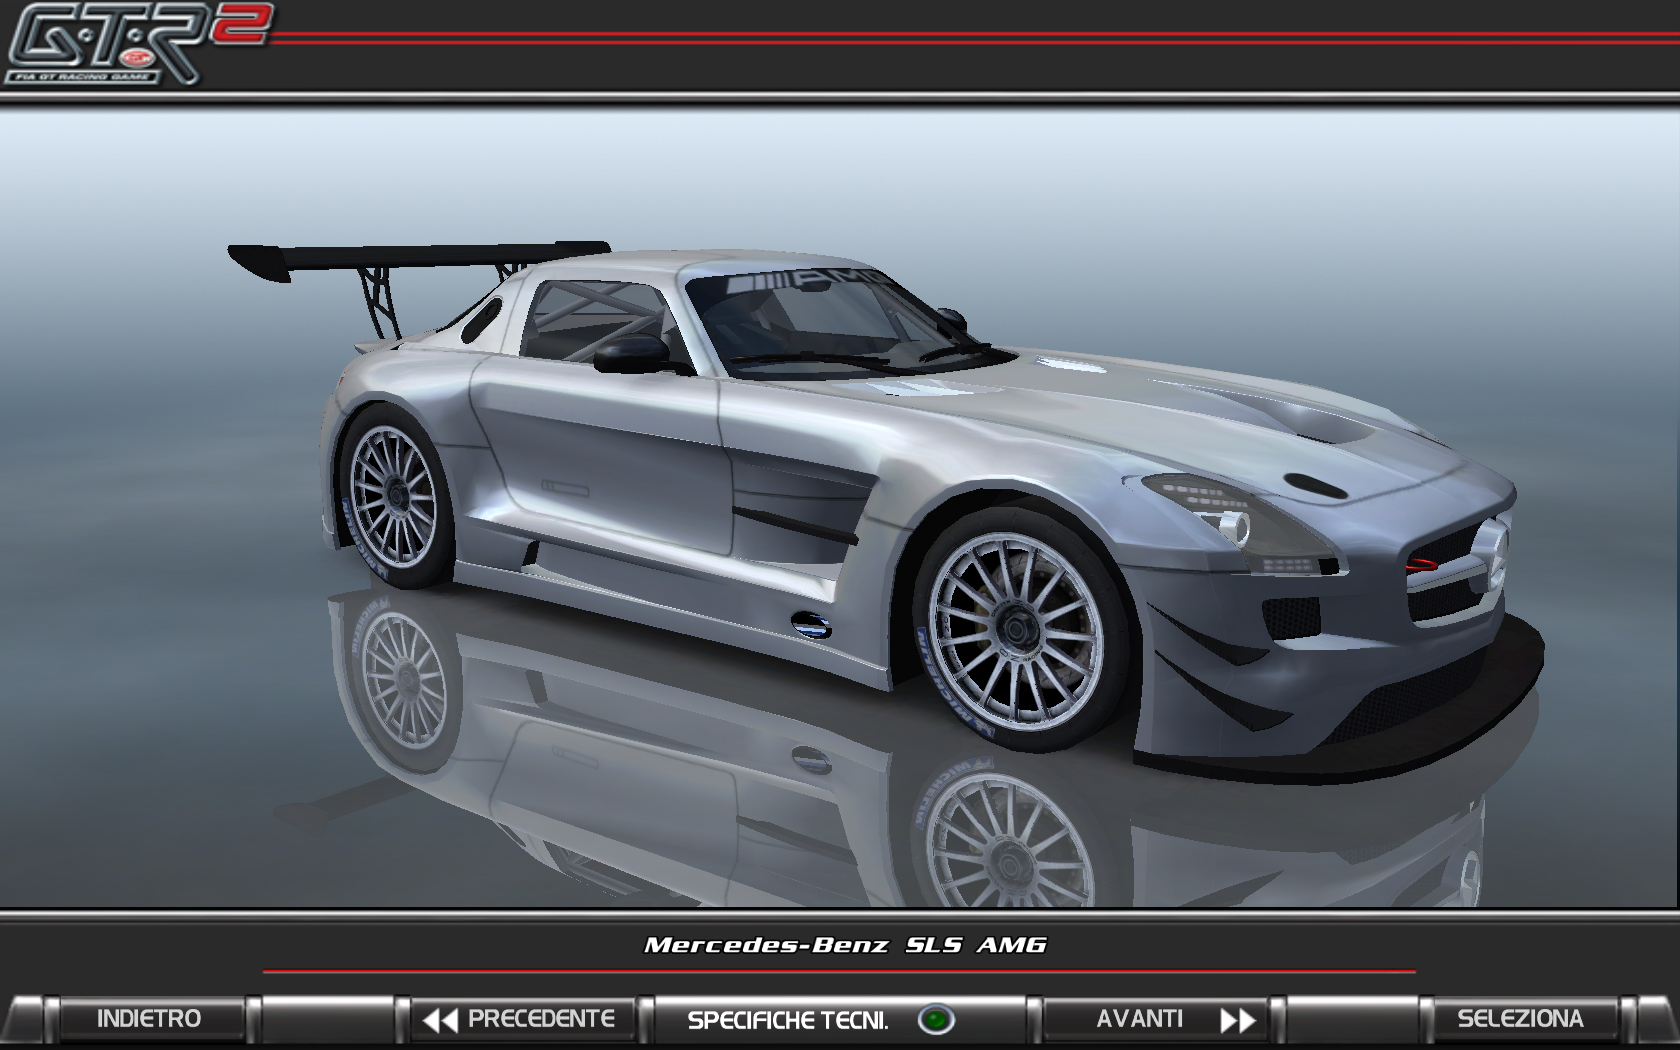 Project cars new mercedes amg gt3 previews virtualr sim racing - Sls_1